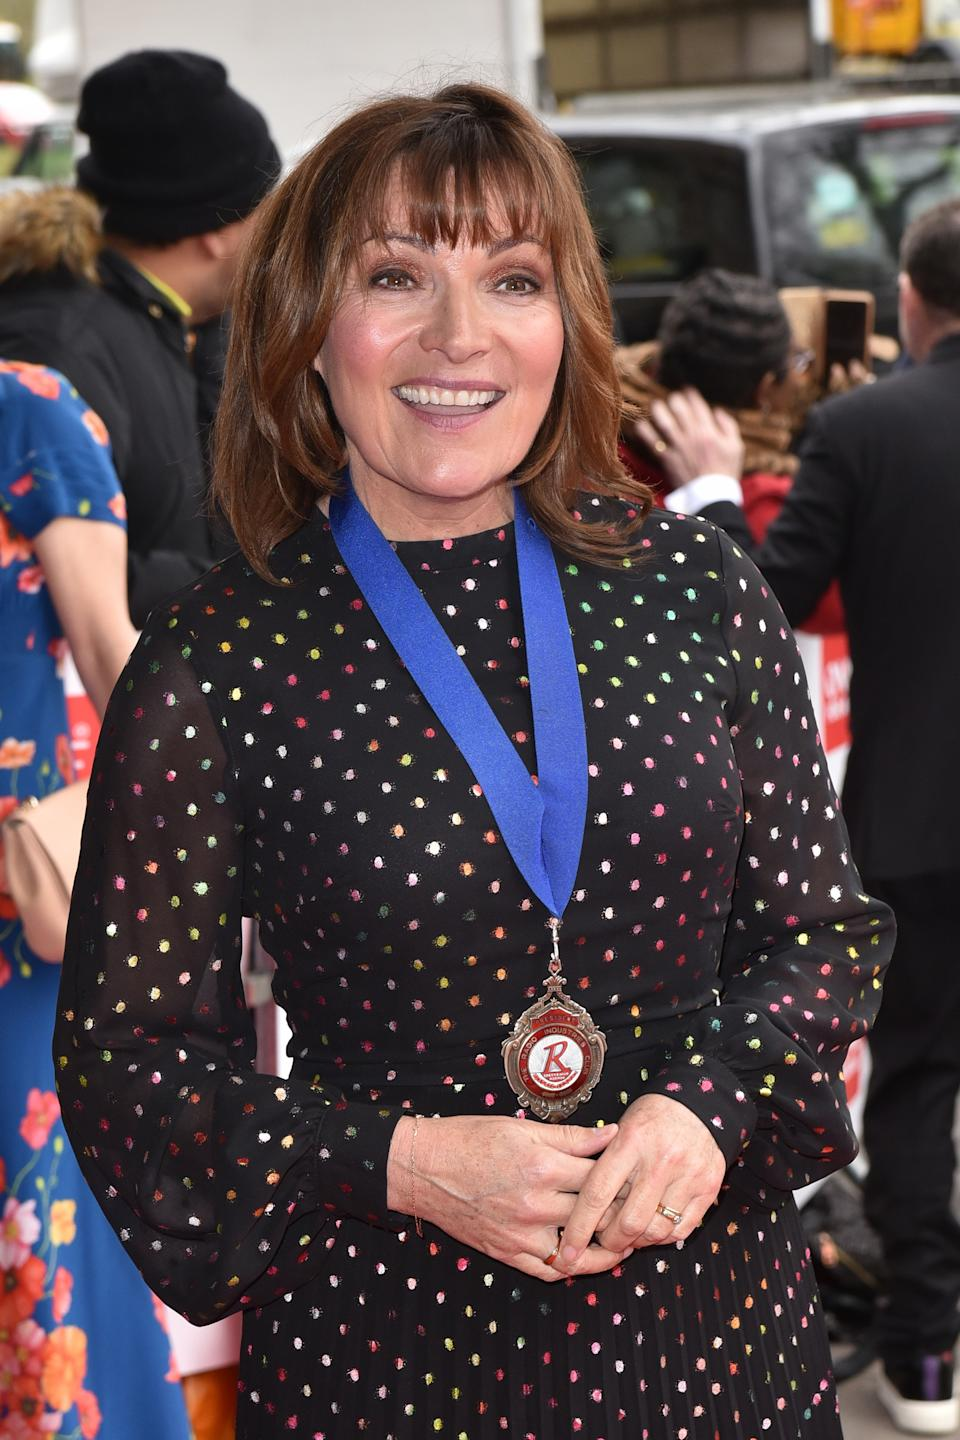 Lorraine Kelly attends the TRIC Awards 2020 at The Grosvenor House in London. (Photo by James Warren / SOPA Images/Sipa USA)